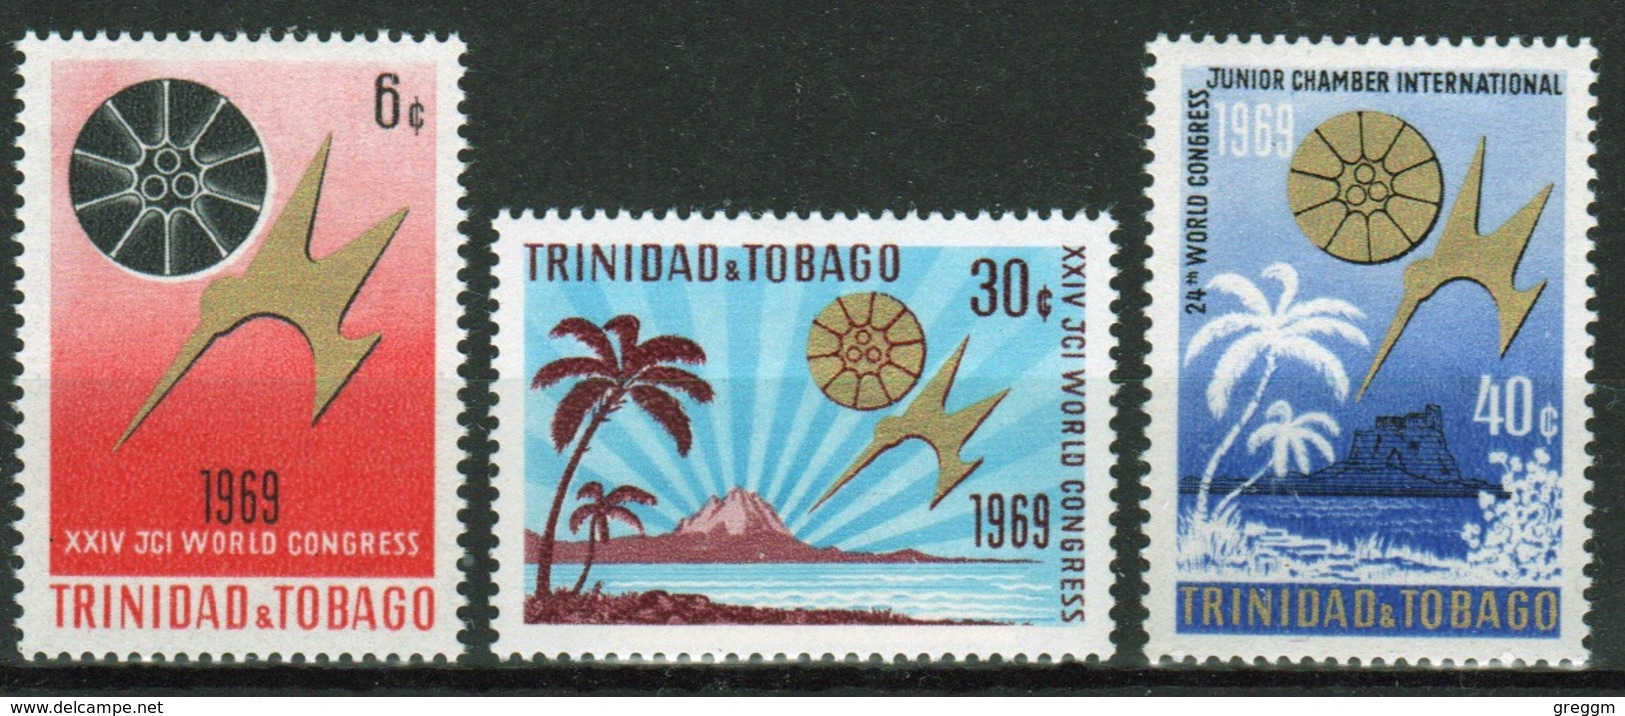 Trinidad And Tobago 1969 Set Of Stamps To Celebrate The Junior Chamber Of Commerce. - Trinidad & Tobago (1962-...)